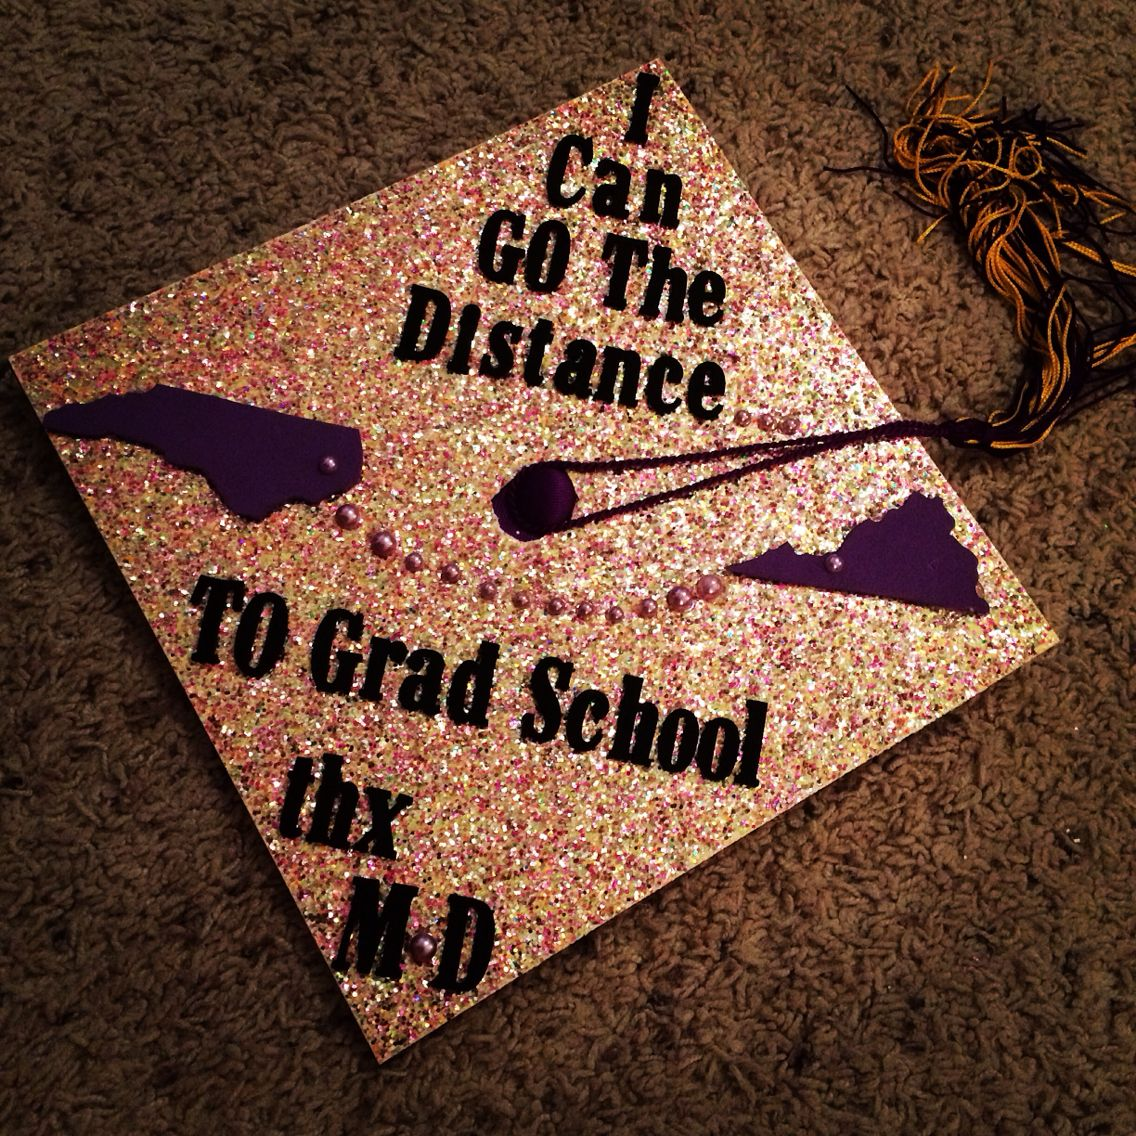 Catchy Disney Graduation Once A Disney Always A Disney Disney Graduation Once A Disney Always A Disney Kid Disney Graduation Cap Decoration Ideas Disney Graduation Caps ideas Disney Graduation Cap